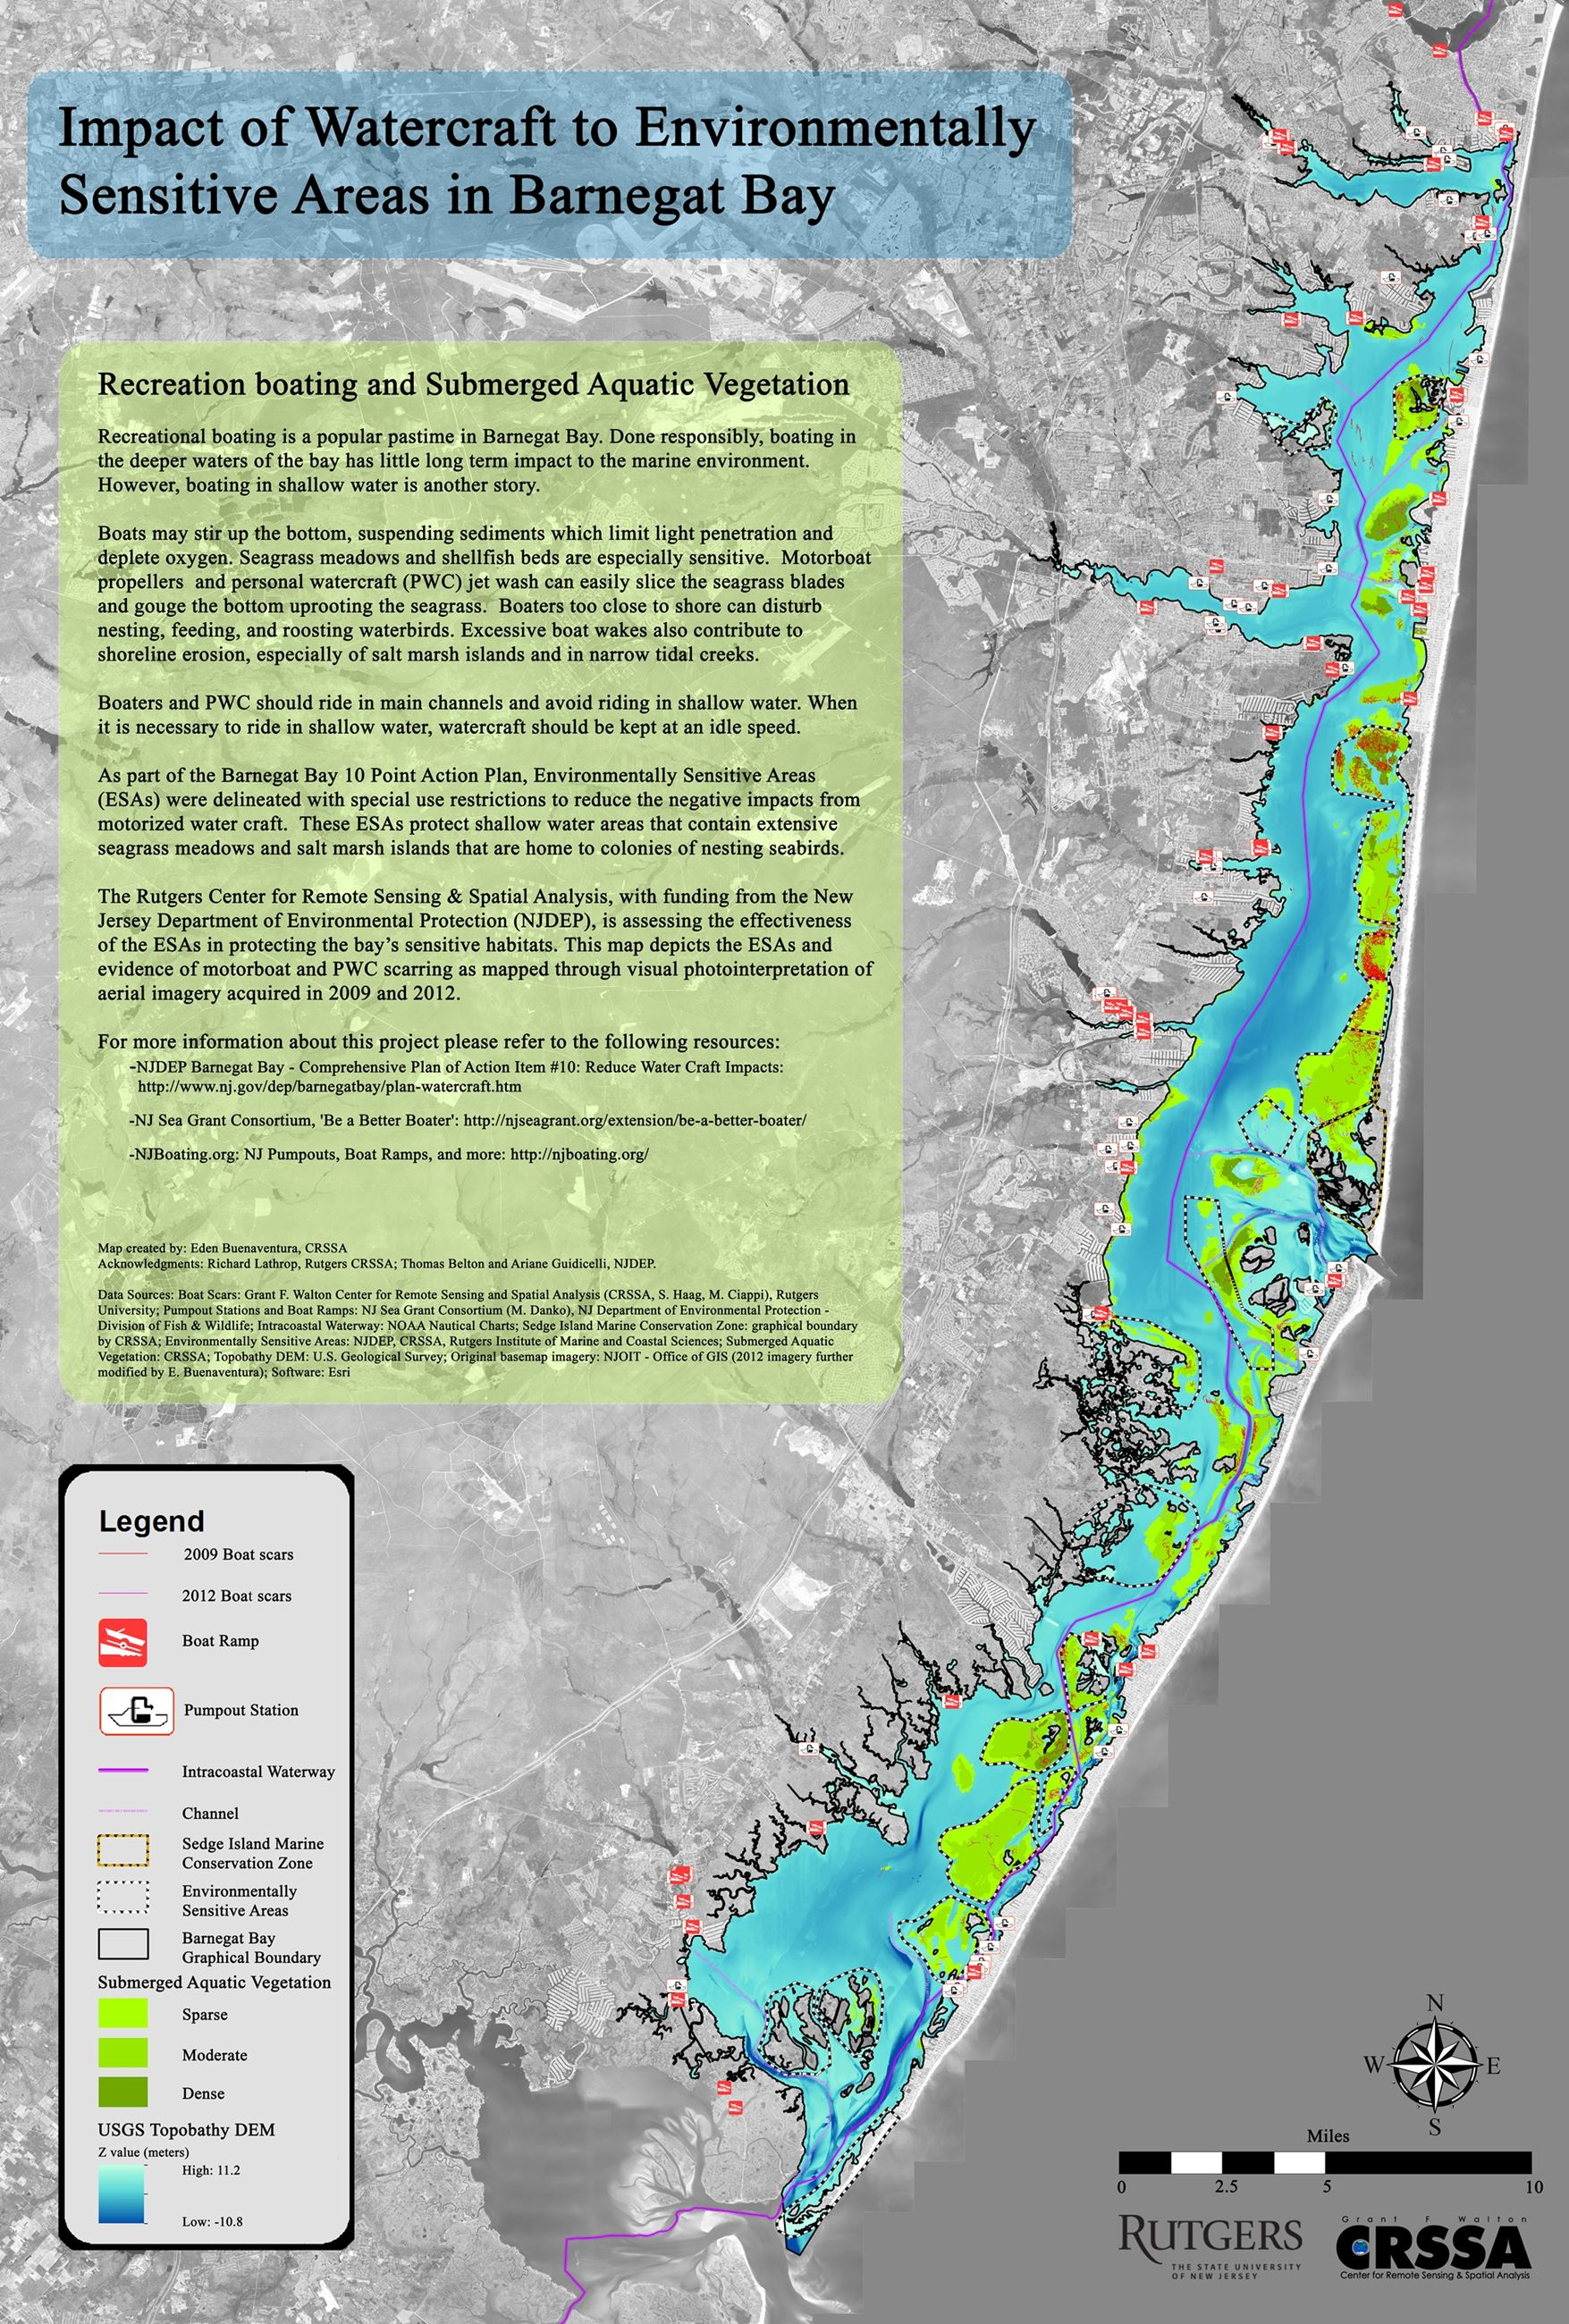 Number 12 Impact of Watercraft to Environmentally Sensitive Areas in Barnegat Bay